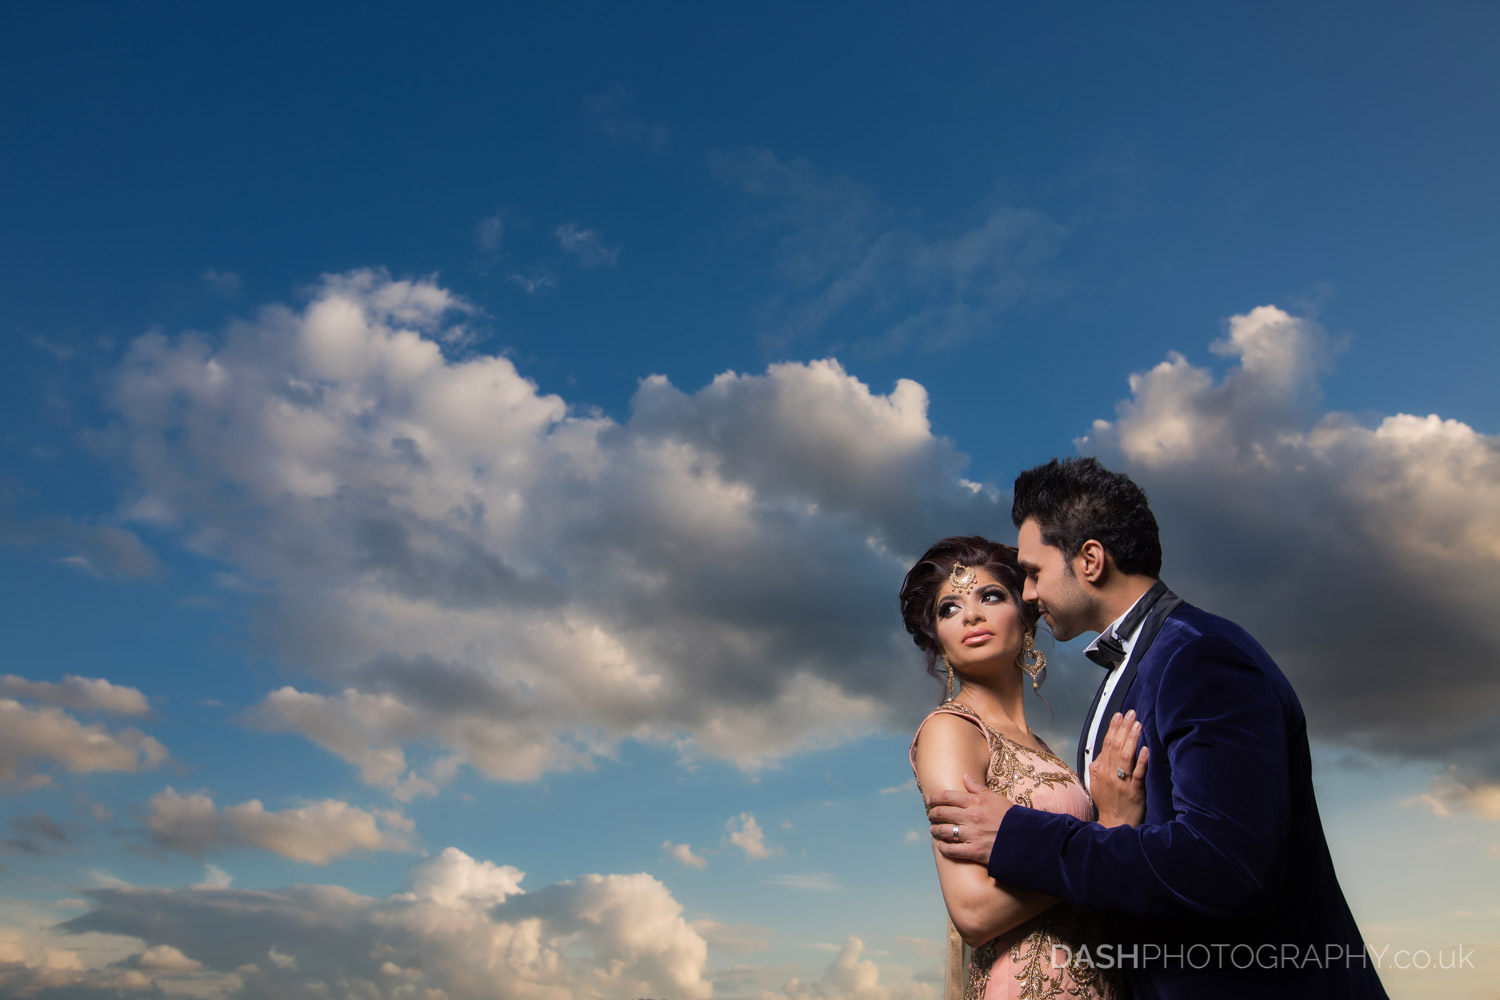 Dash Photography is an Asian wedding photography company based in London UK